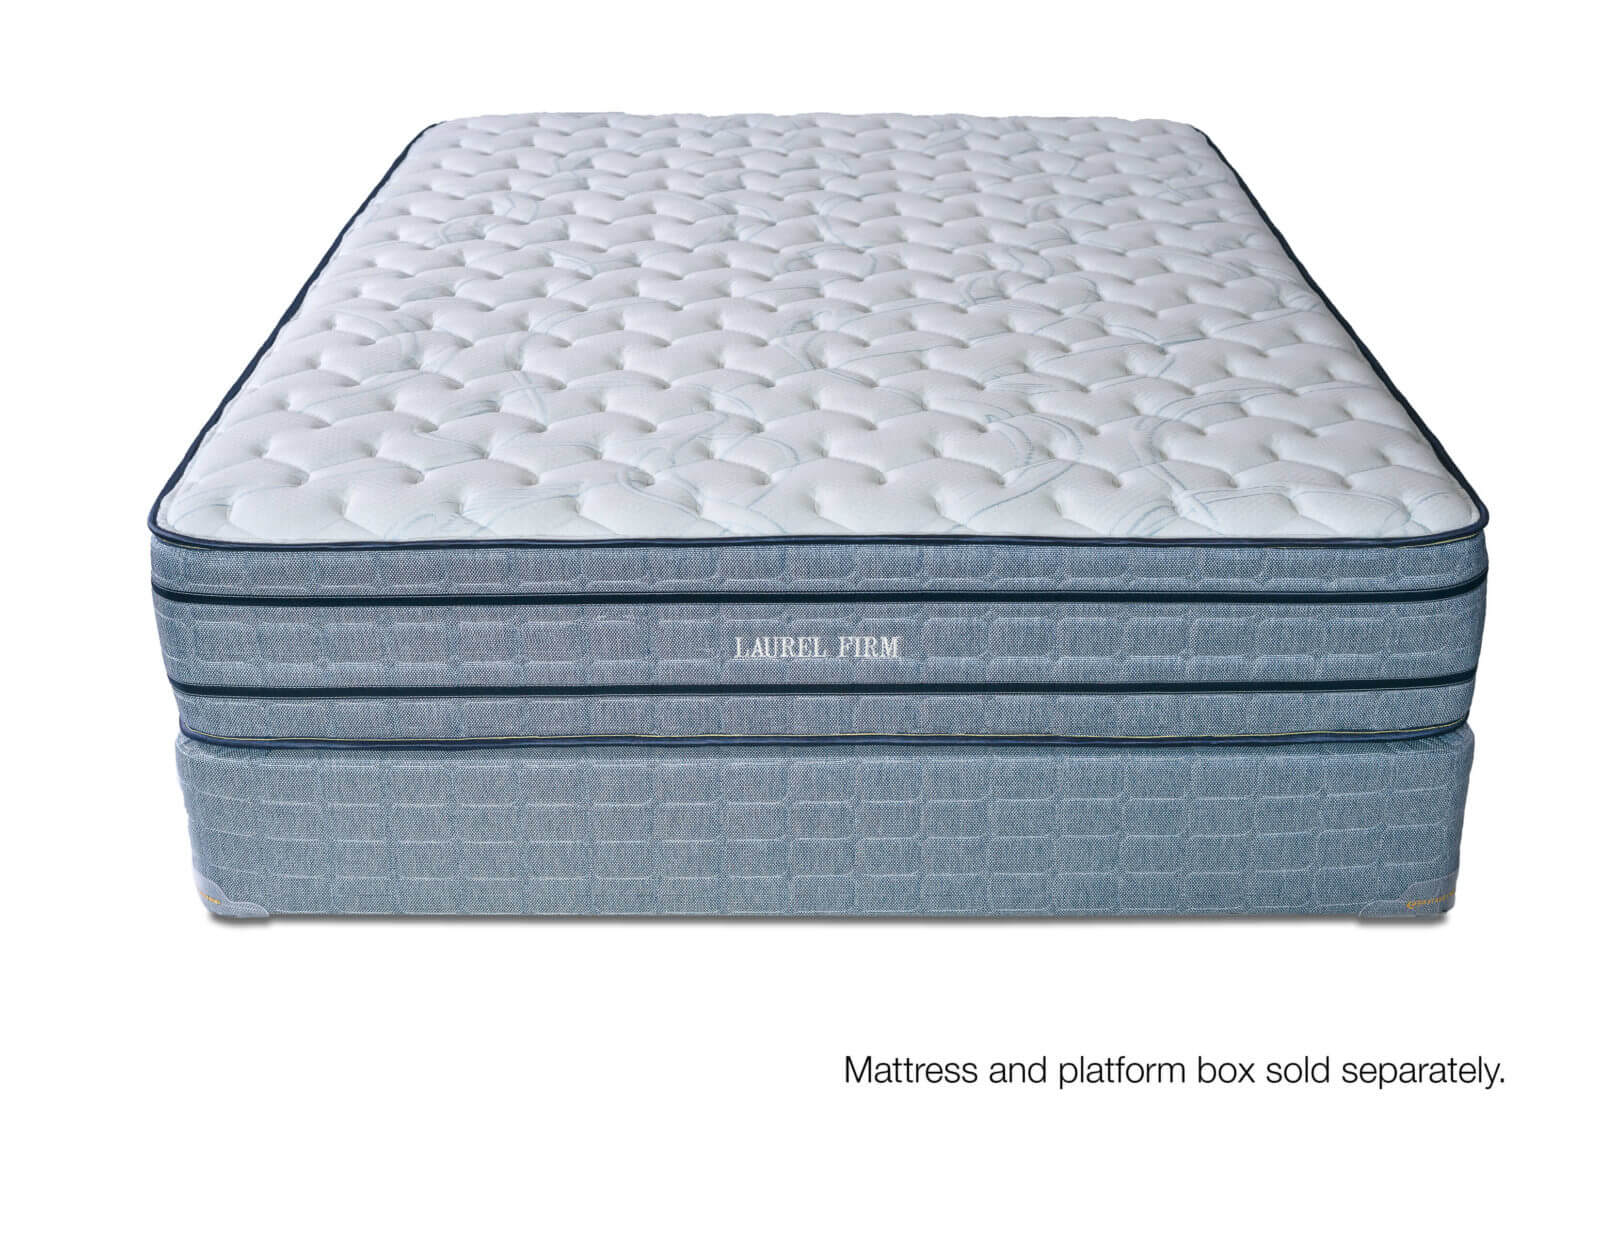 Laurel Firm Innerspring Mattress By 2 Sided Classics Seattle